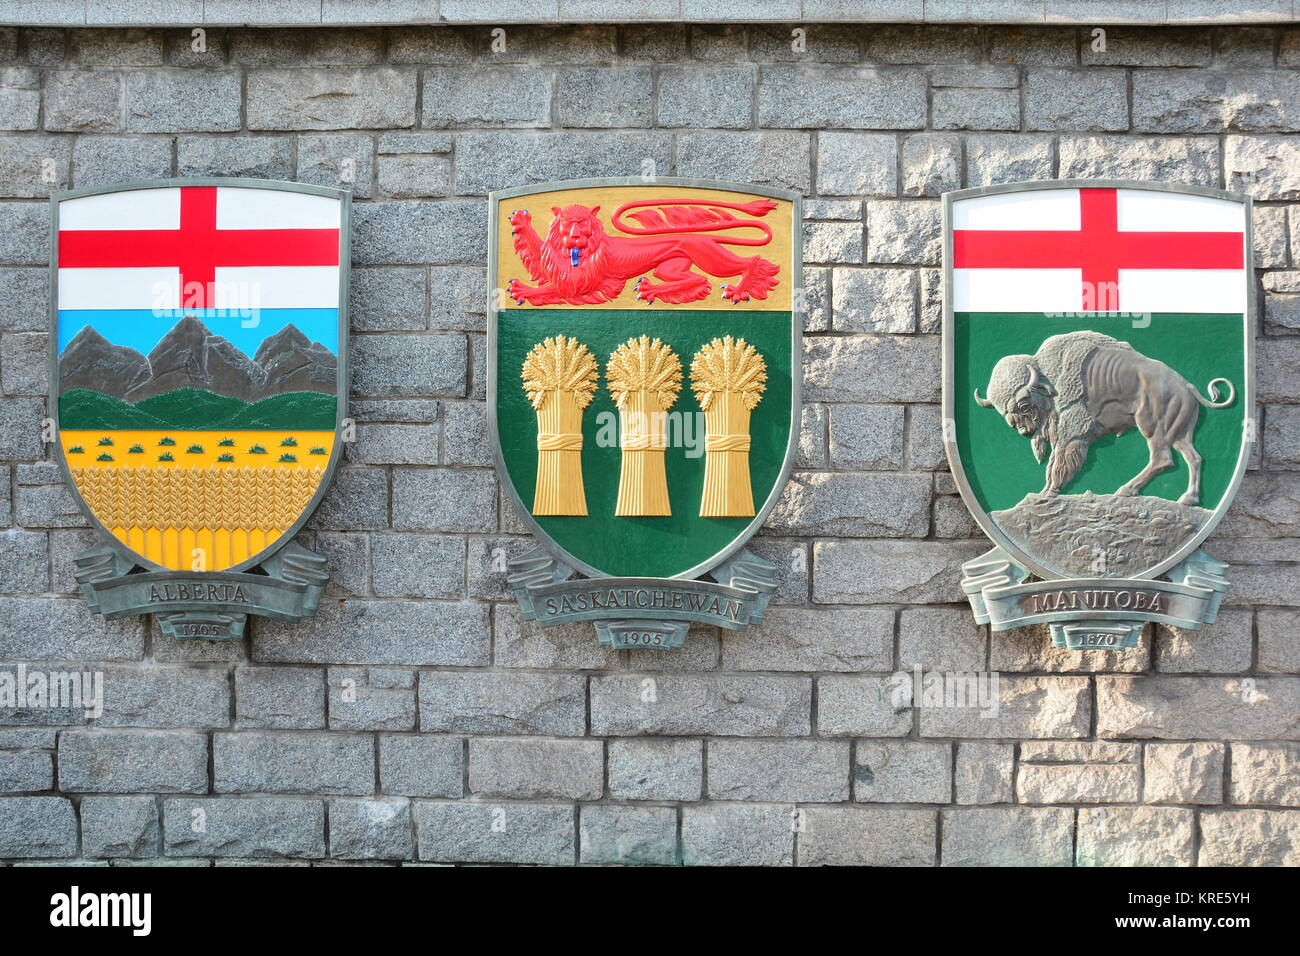 The coats of arms for the provinces of Alberta,Saskatchewan and Manitoba. - Stock Image